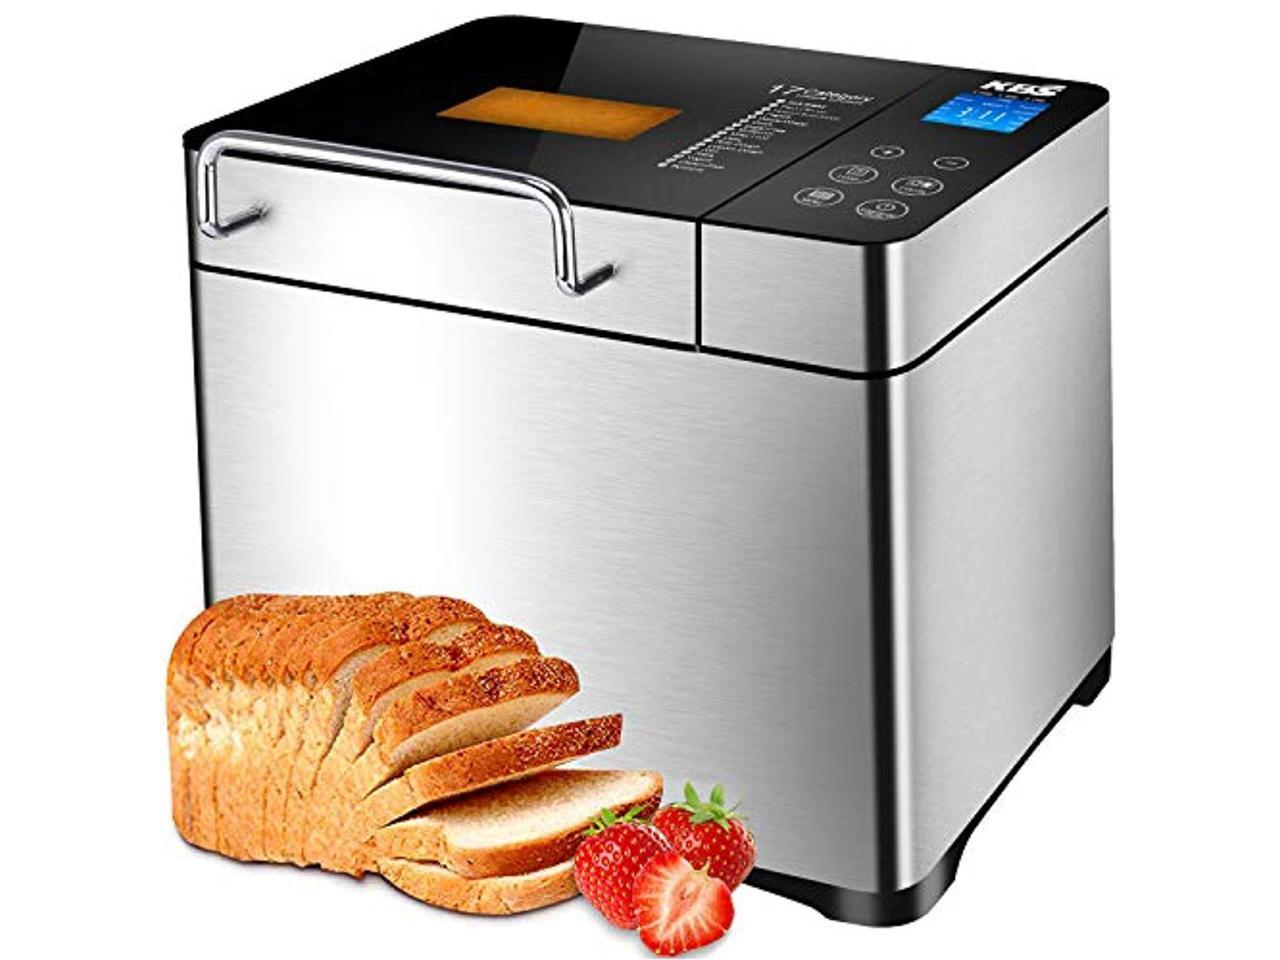 kbs stainless steel bread machine,1500w 2lb 17-in-1 ...